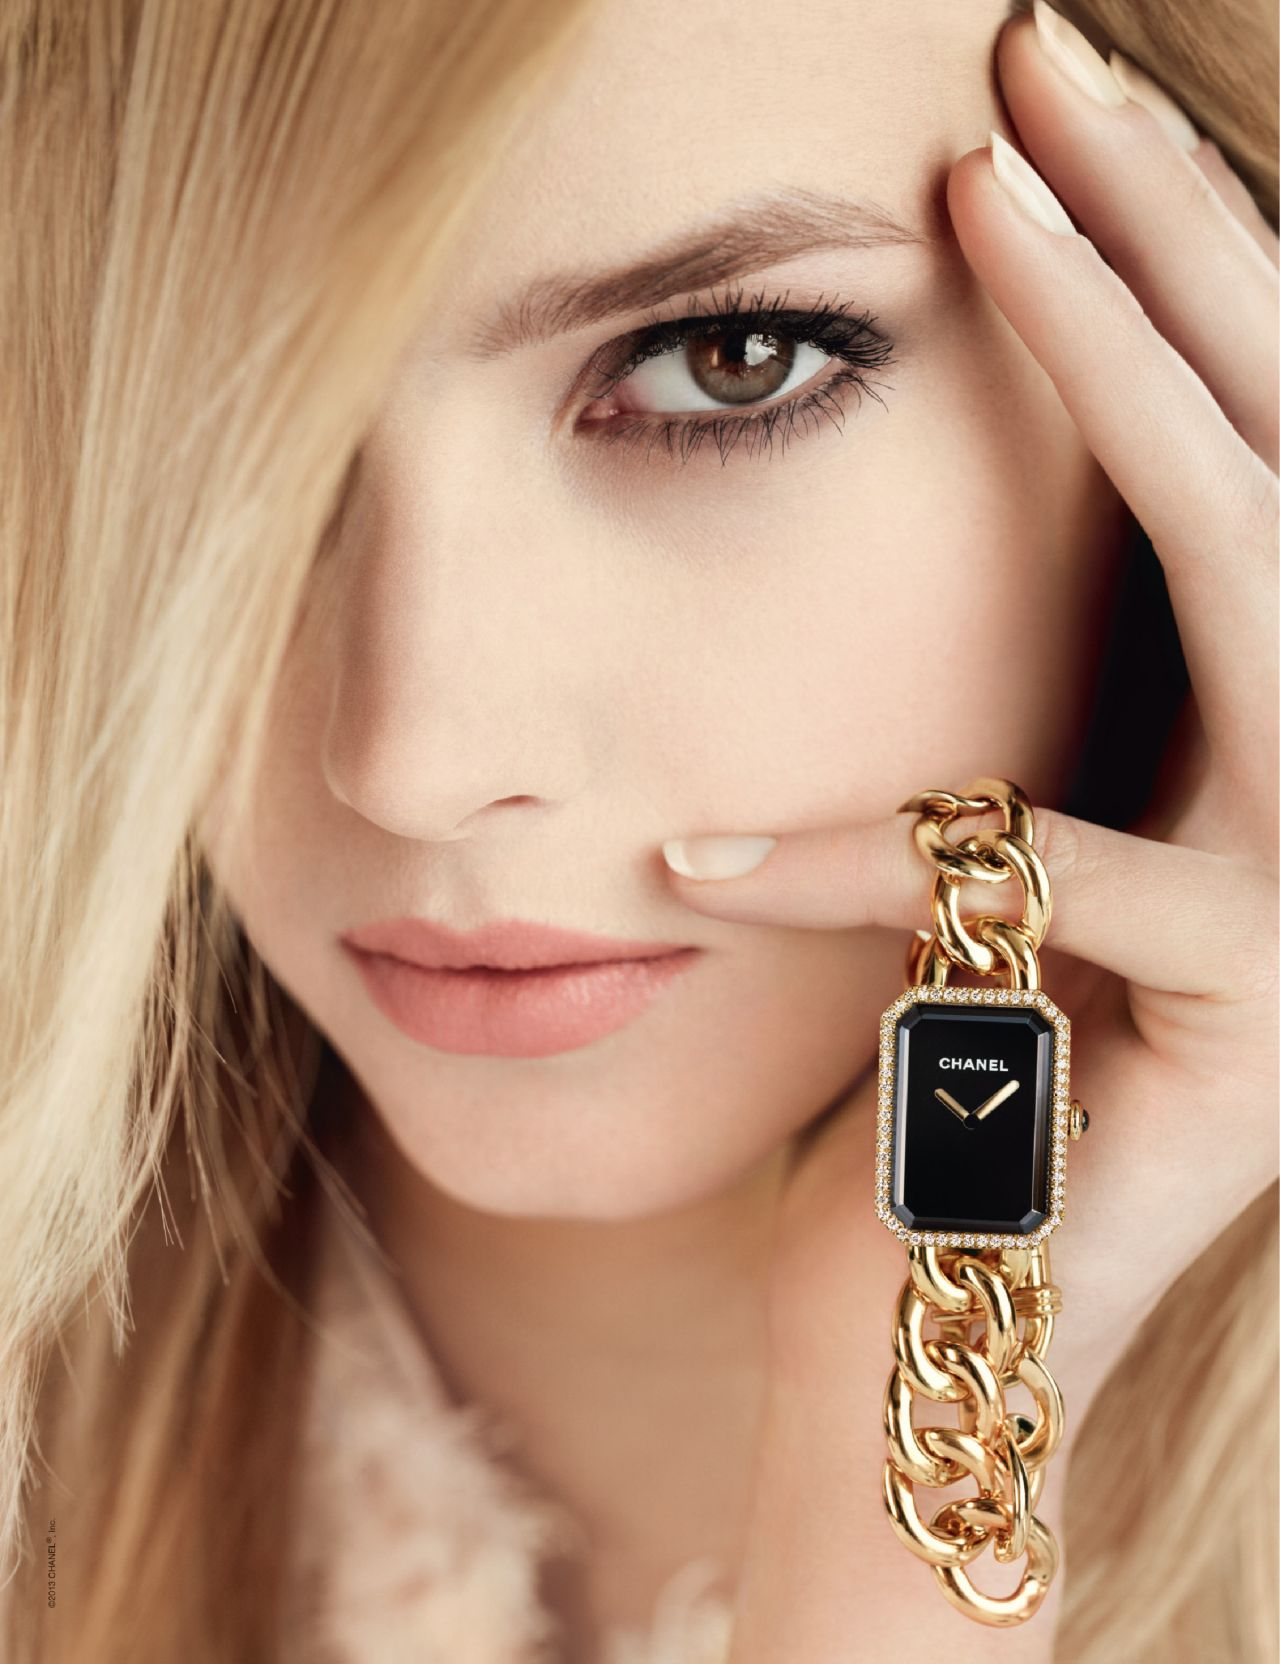 Sigrid Agren Photoshoot for Chanel Fine Jewelry - 2013 Ad Campaign